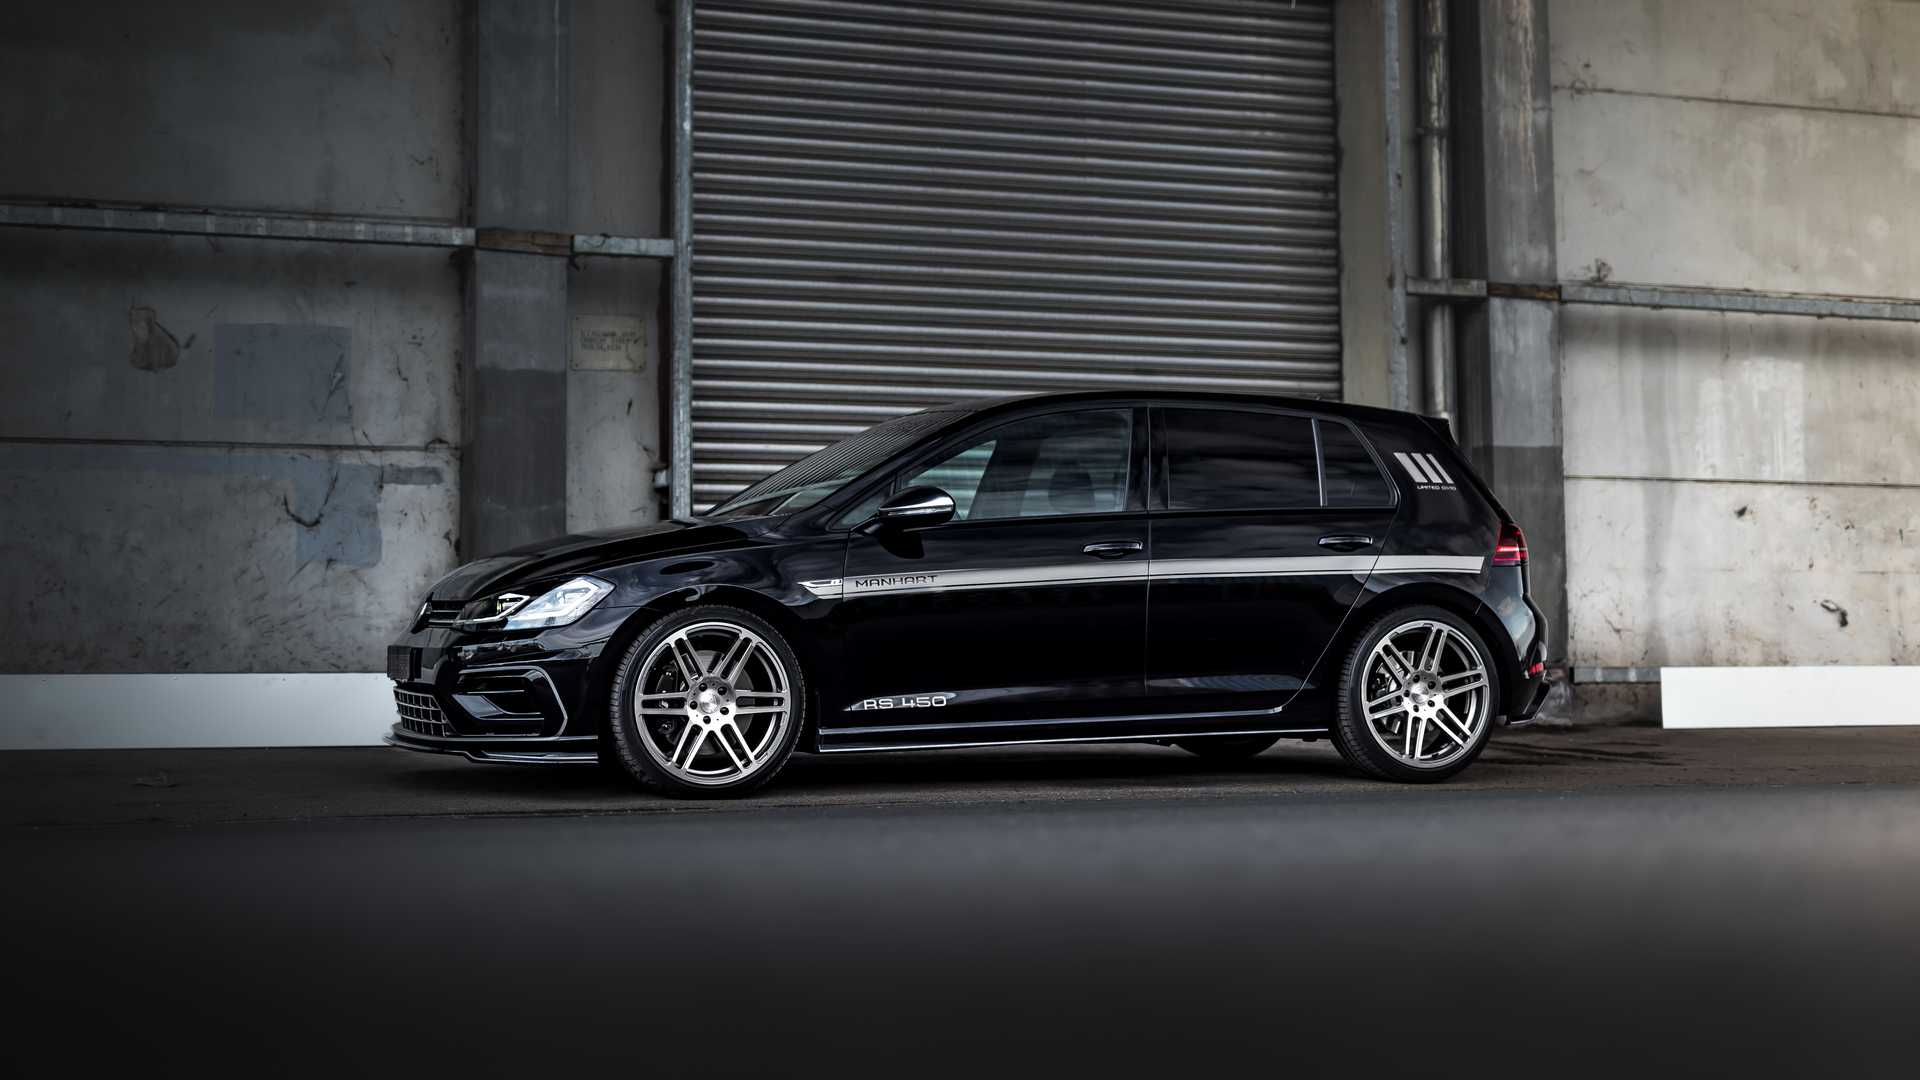 manhart-rs450-based-on-the-vw-golf-r (6)